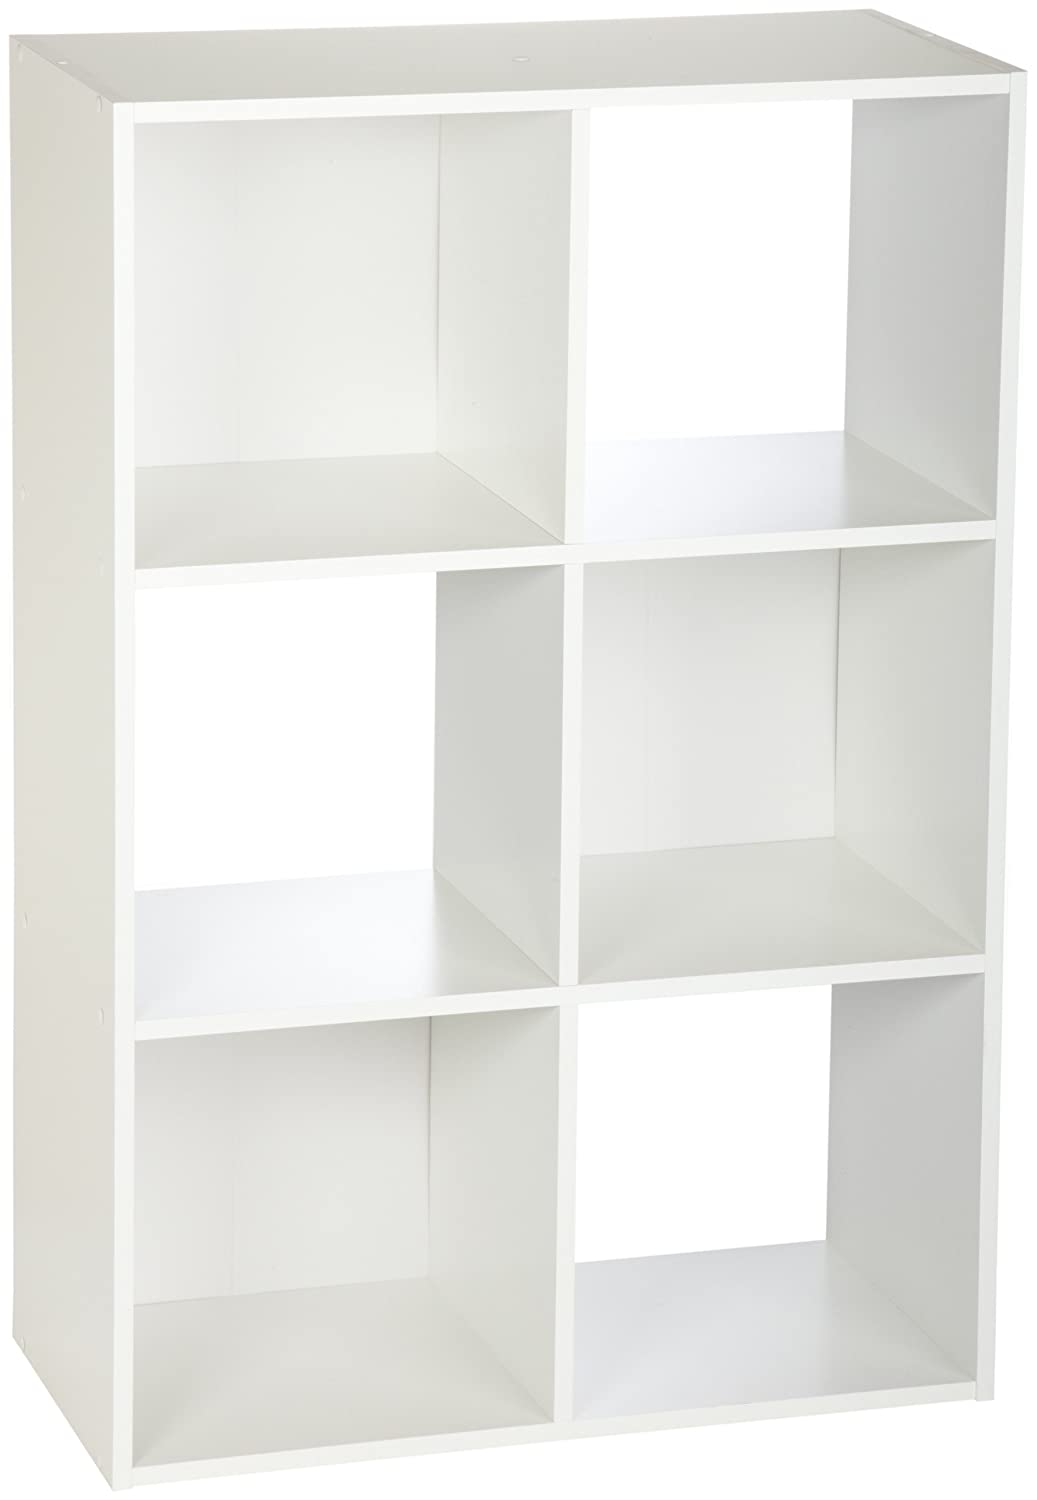 Amazon.com: ClosetMaid 8996 Cubeicals Organizer, 6-Cube, White: Home ...